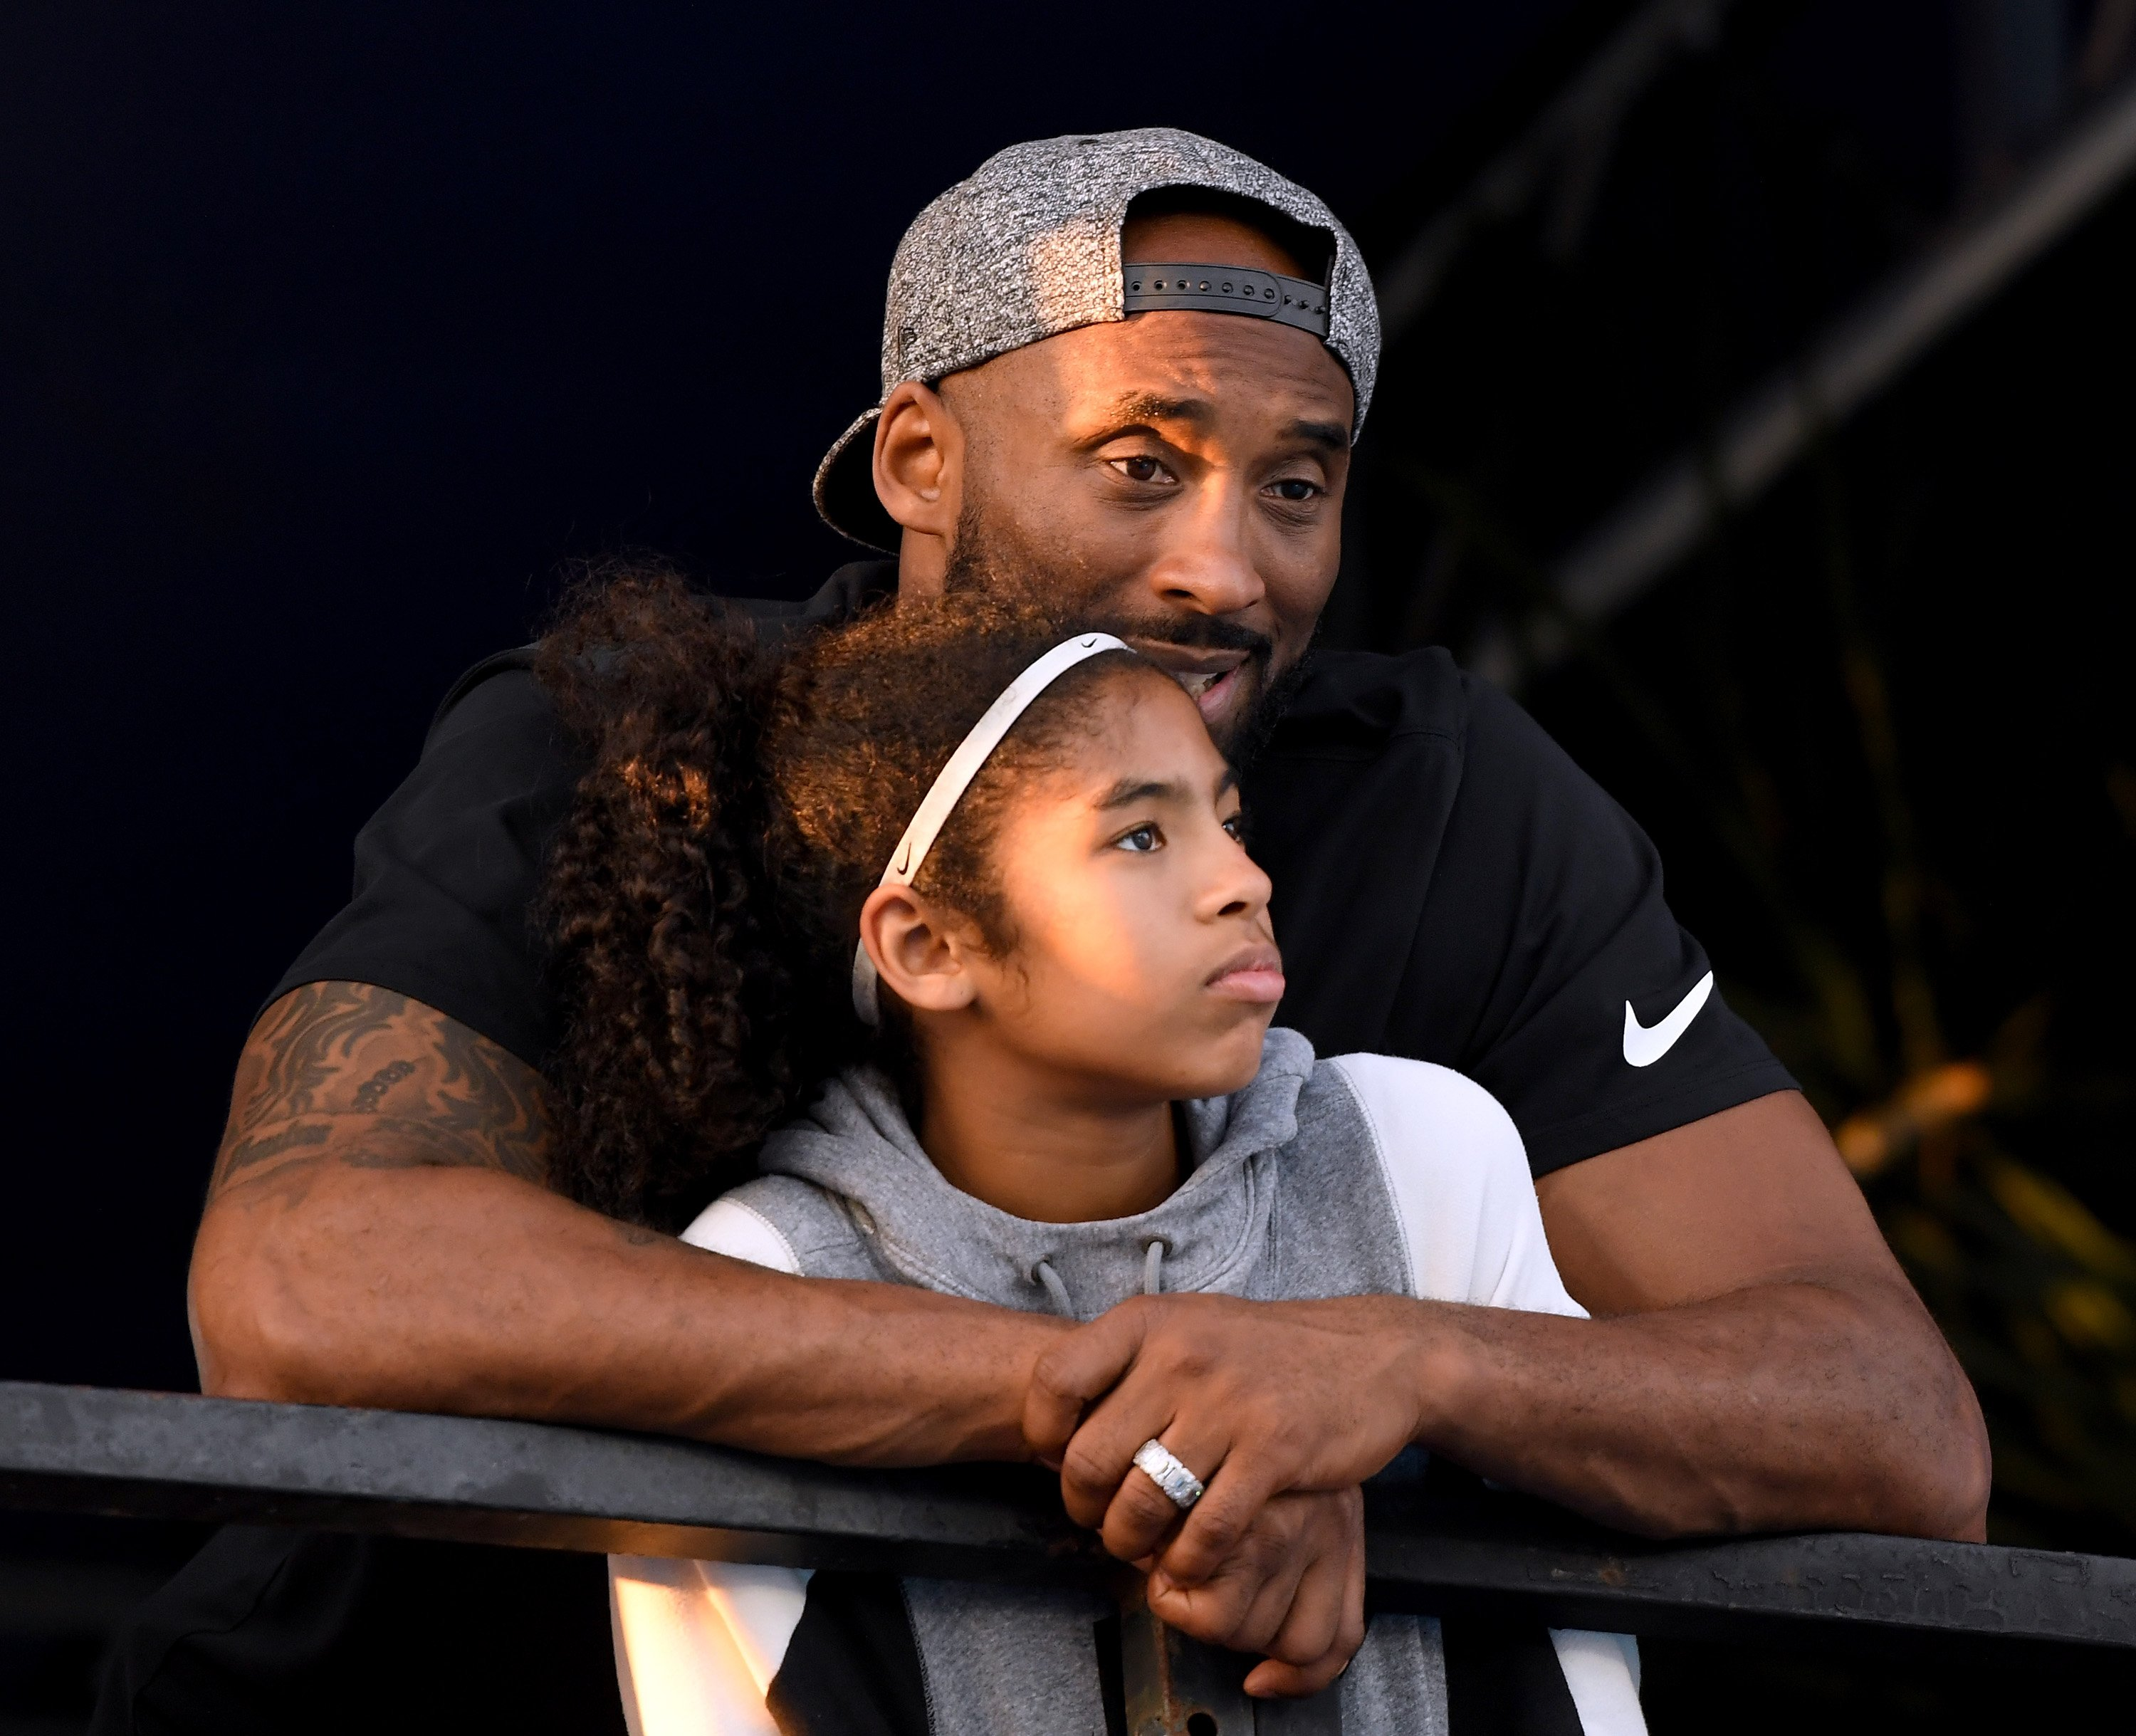 Kobe Bryant and daughter Gianna Bryant watch during day 2 of the Phillips 66 National Swimming Championships in California on July 26, 2018. | Photo: Getty Images